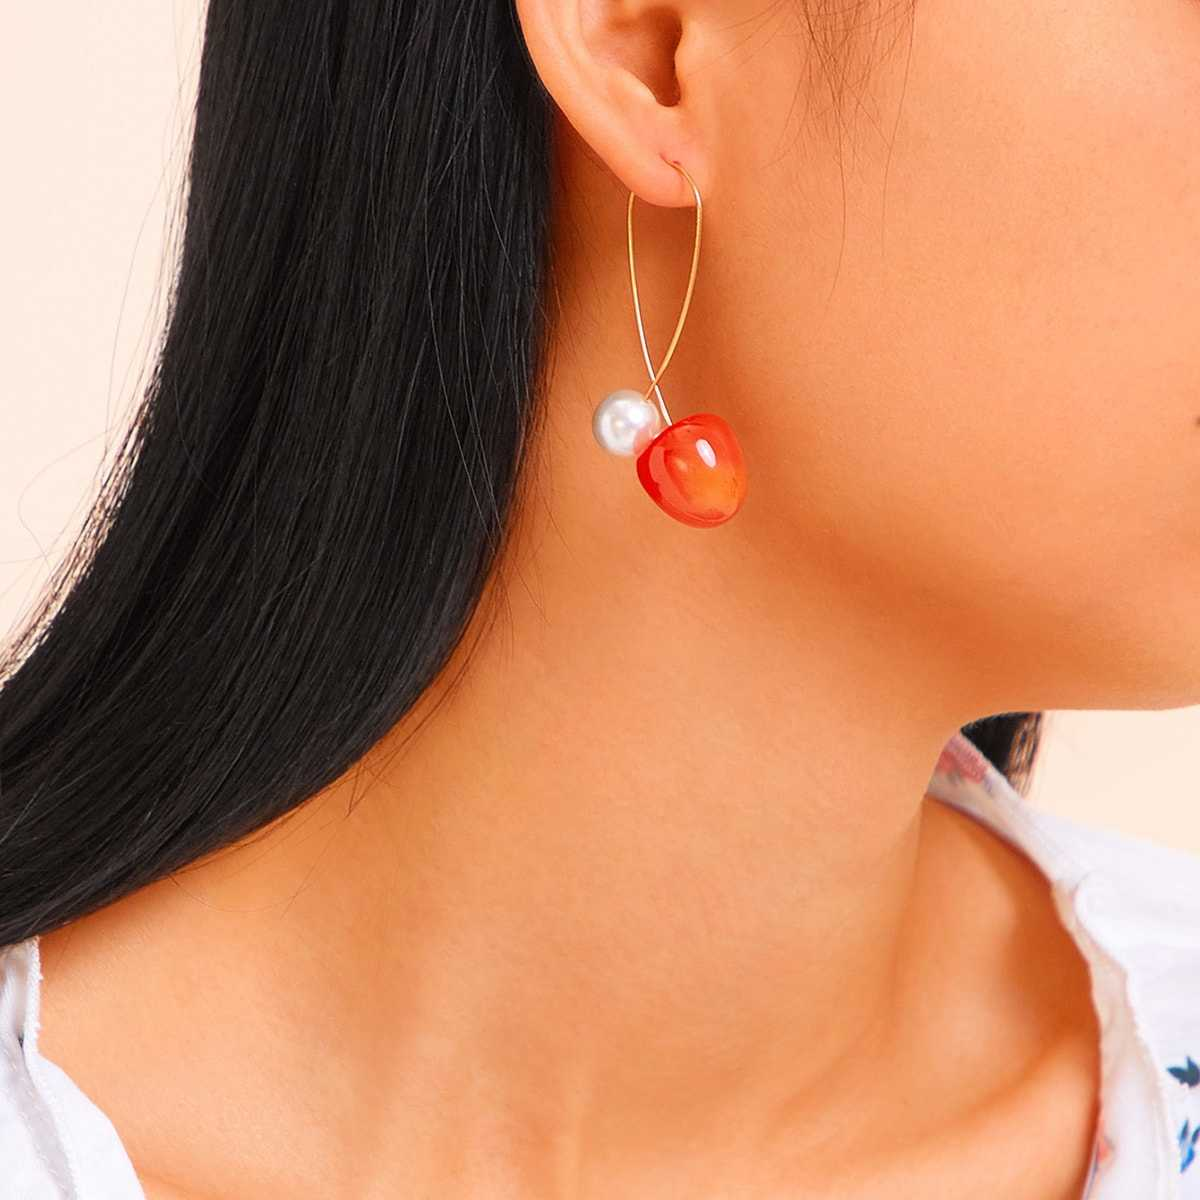 Cherry & Faux Pearl Earrings 1pair in Multicolor by ROMWE on GOOFASH